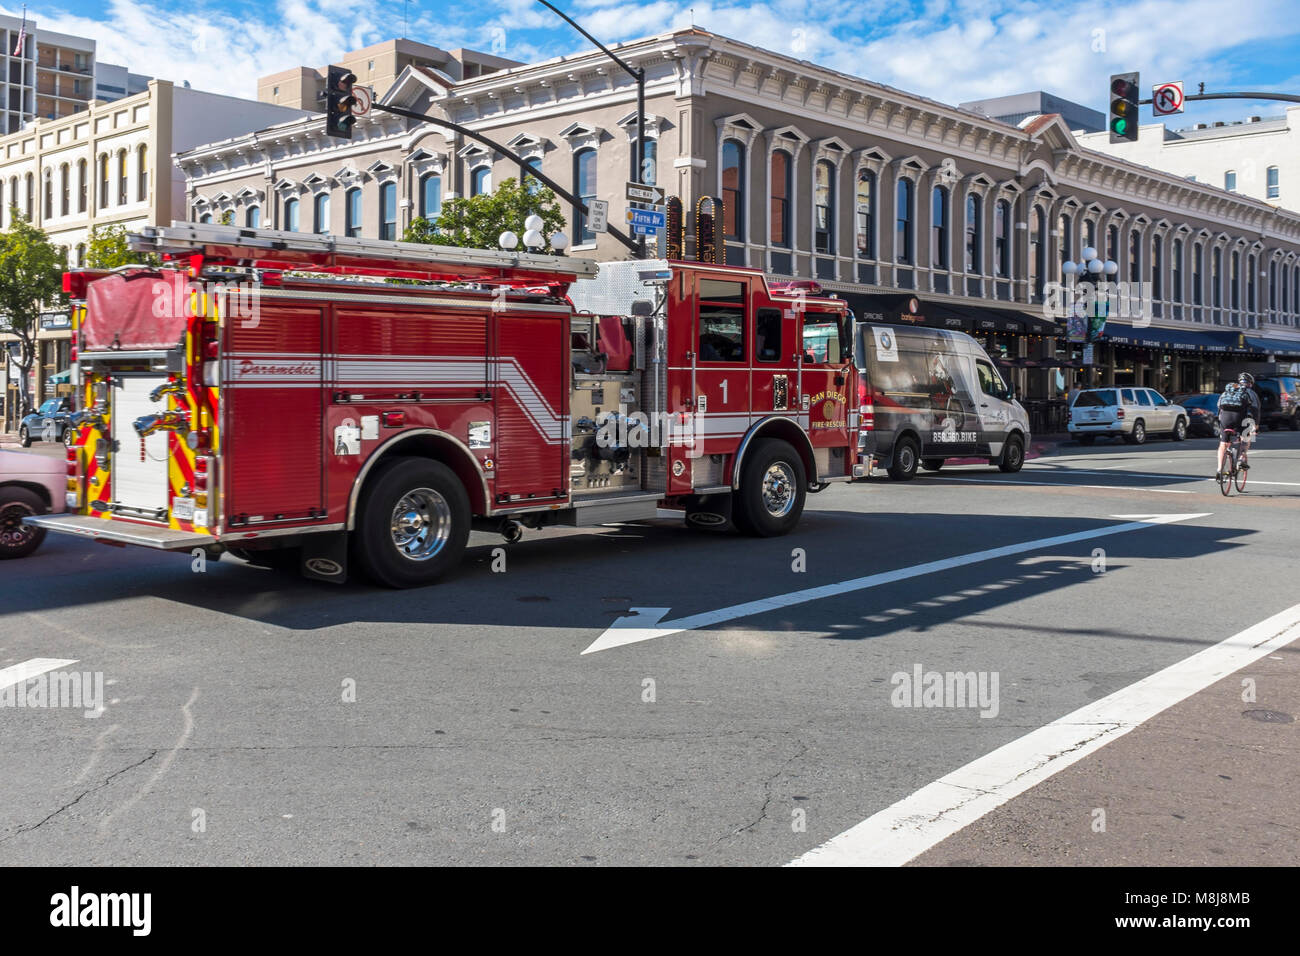 SAN DIEGO, CALIFORNIA, USA - Fire engine travelling down a